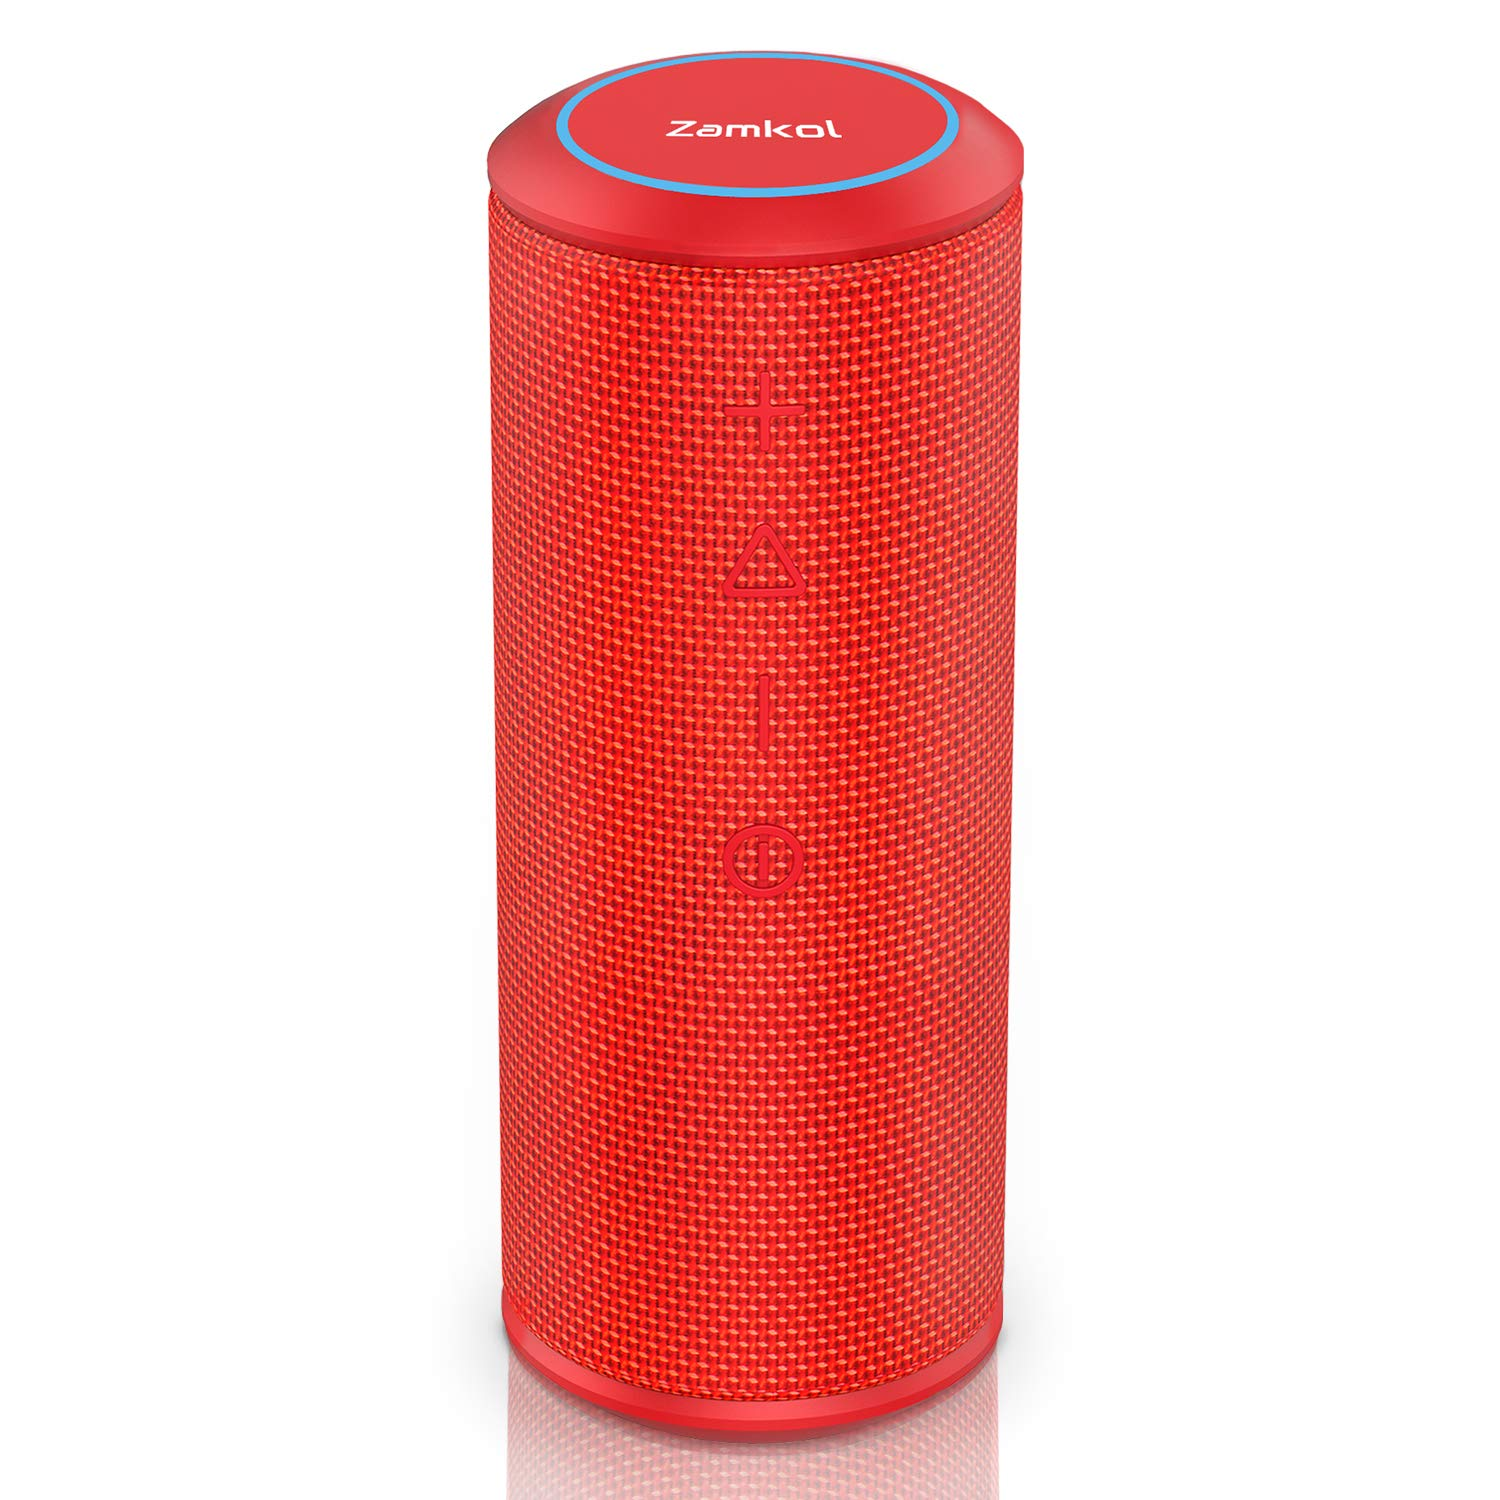 US ZK606 bluetooth speaker Red